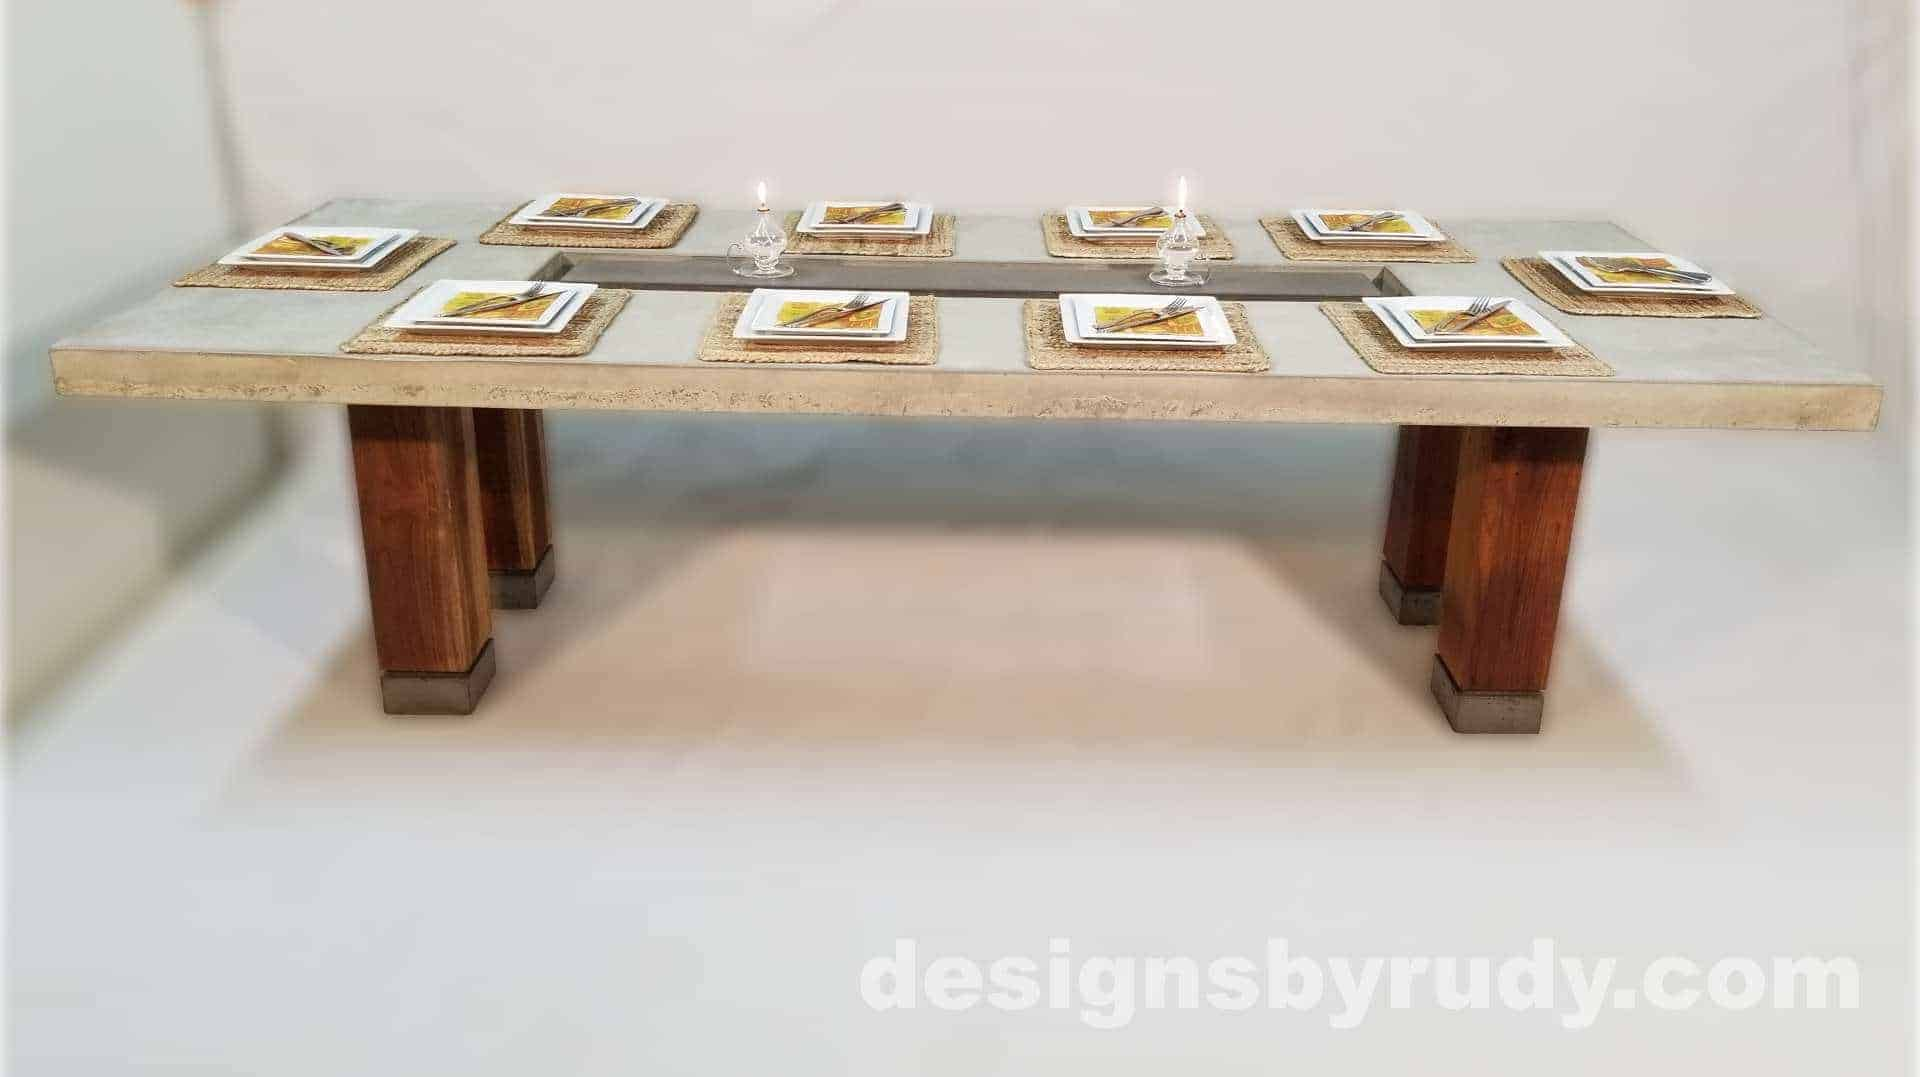 Concrete top dining table on teak legs with center serving tray - front view, Designs by Rudy